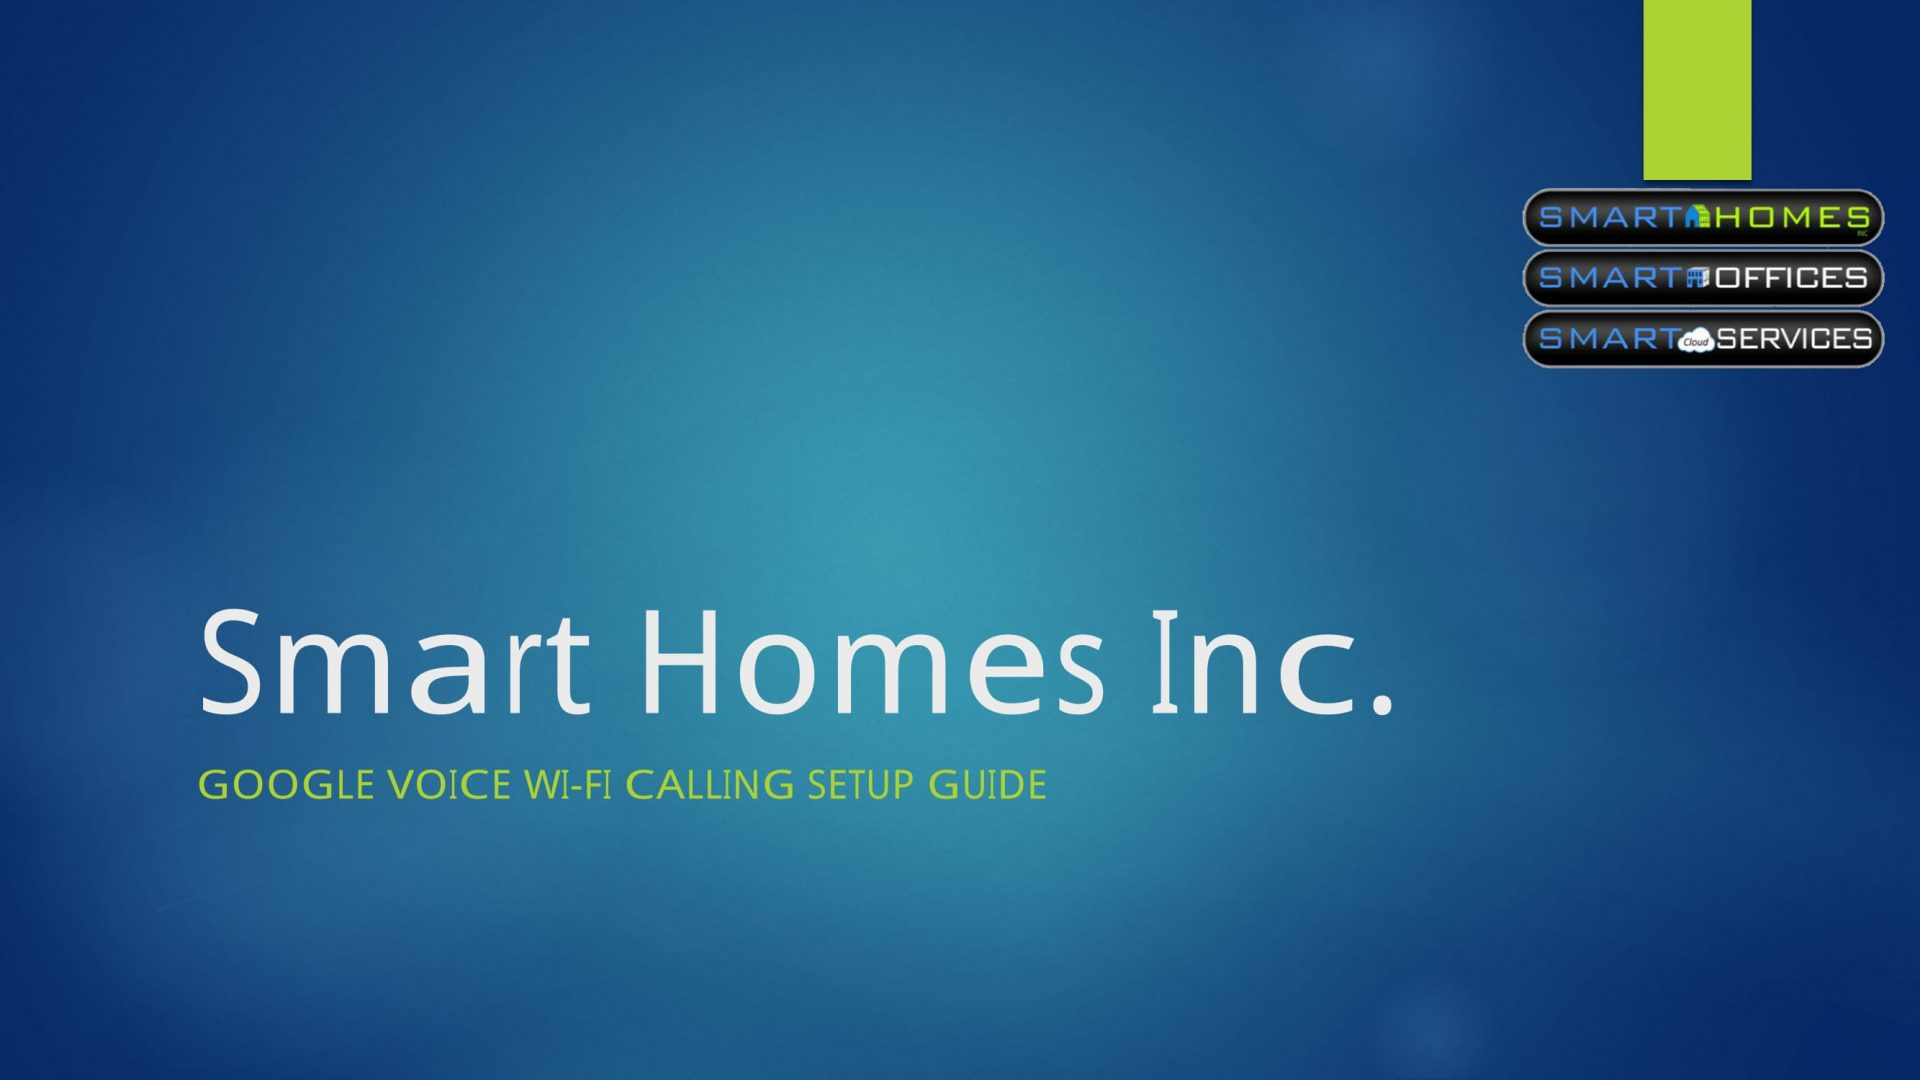 Smart Homes Inc Google Voice Guide-01